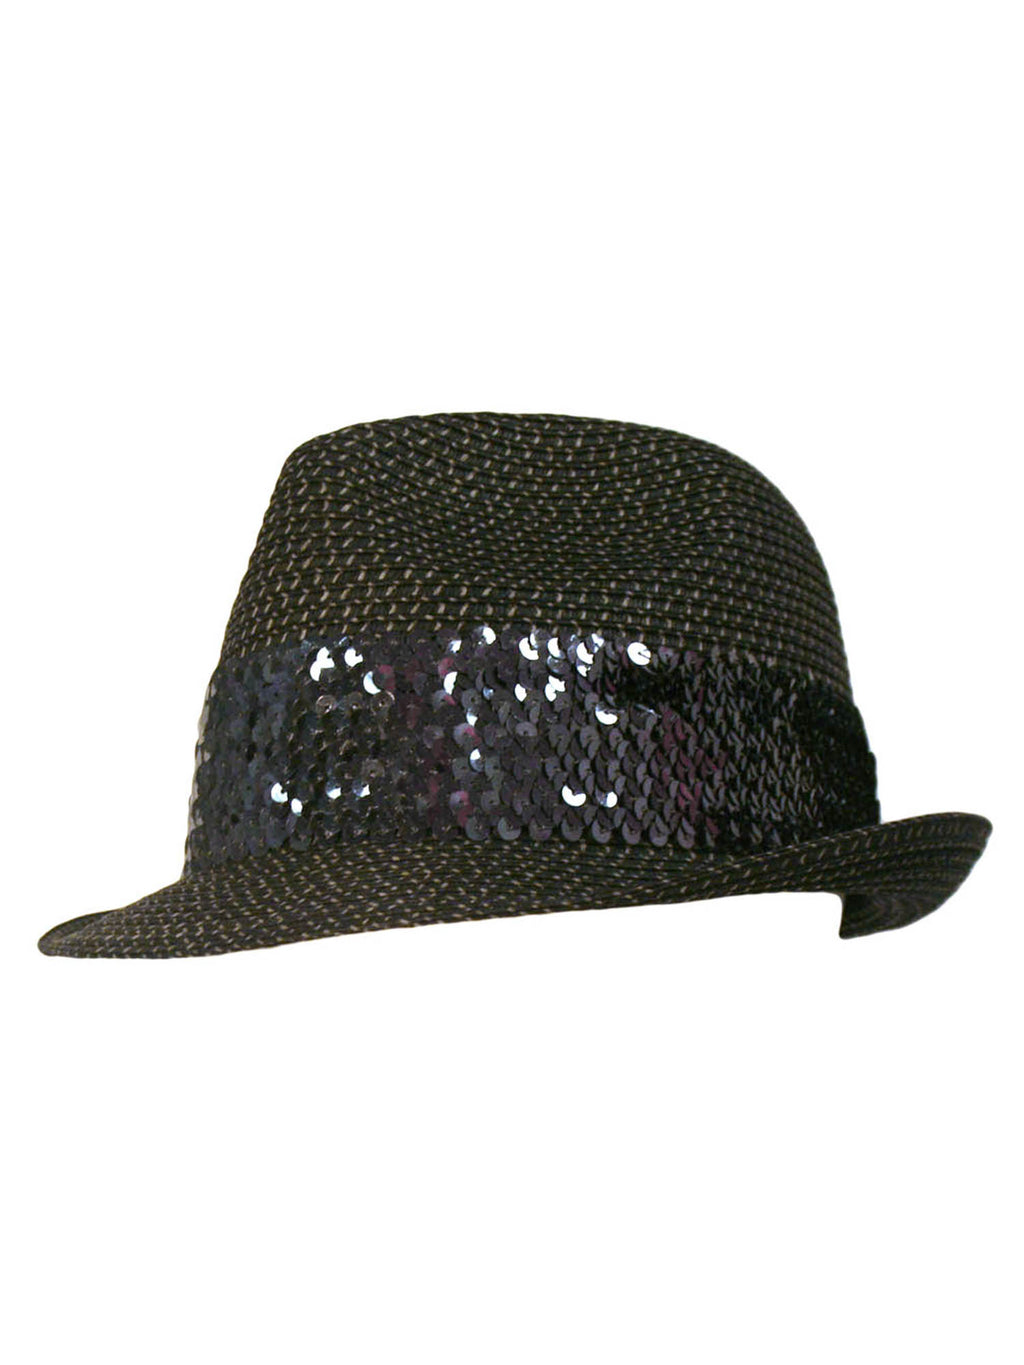 Straw Fedora Hat With Sequin Hat Band